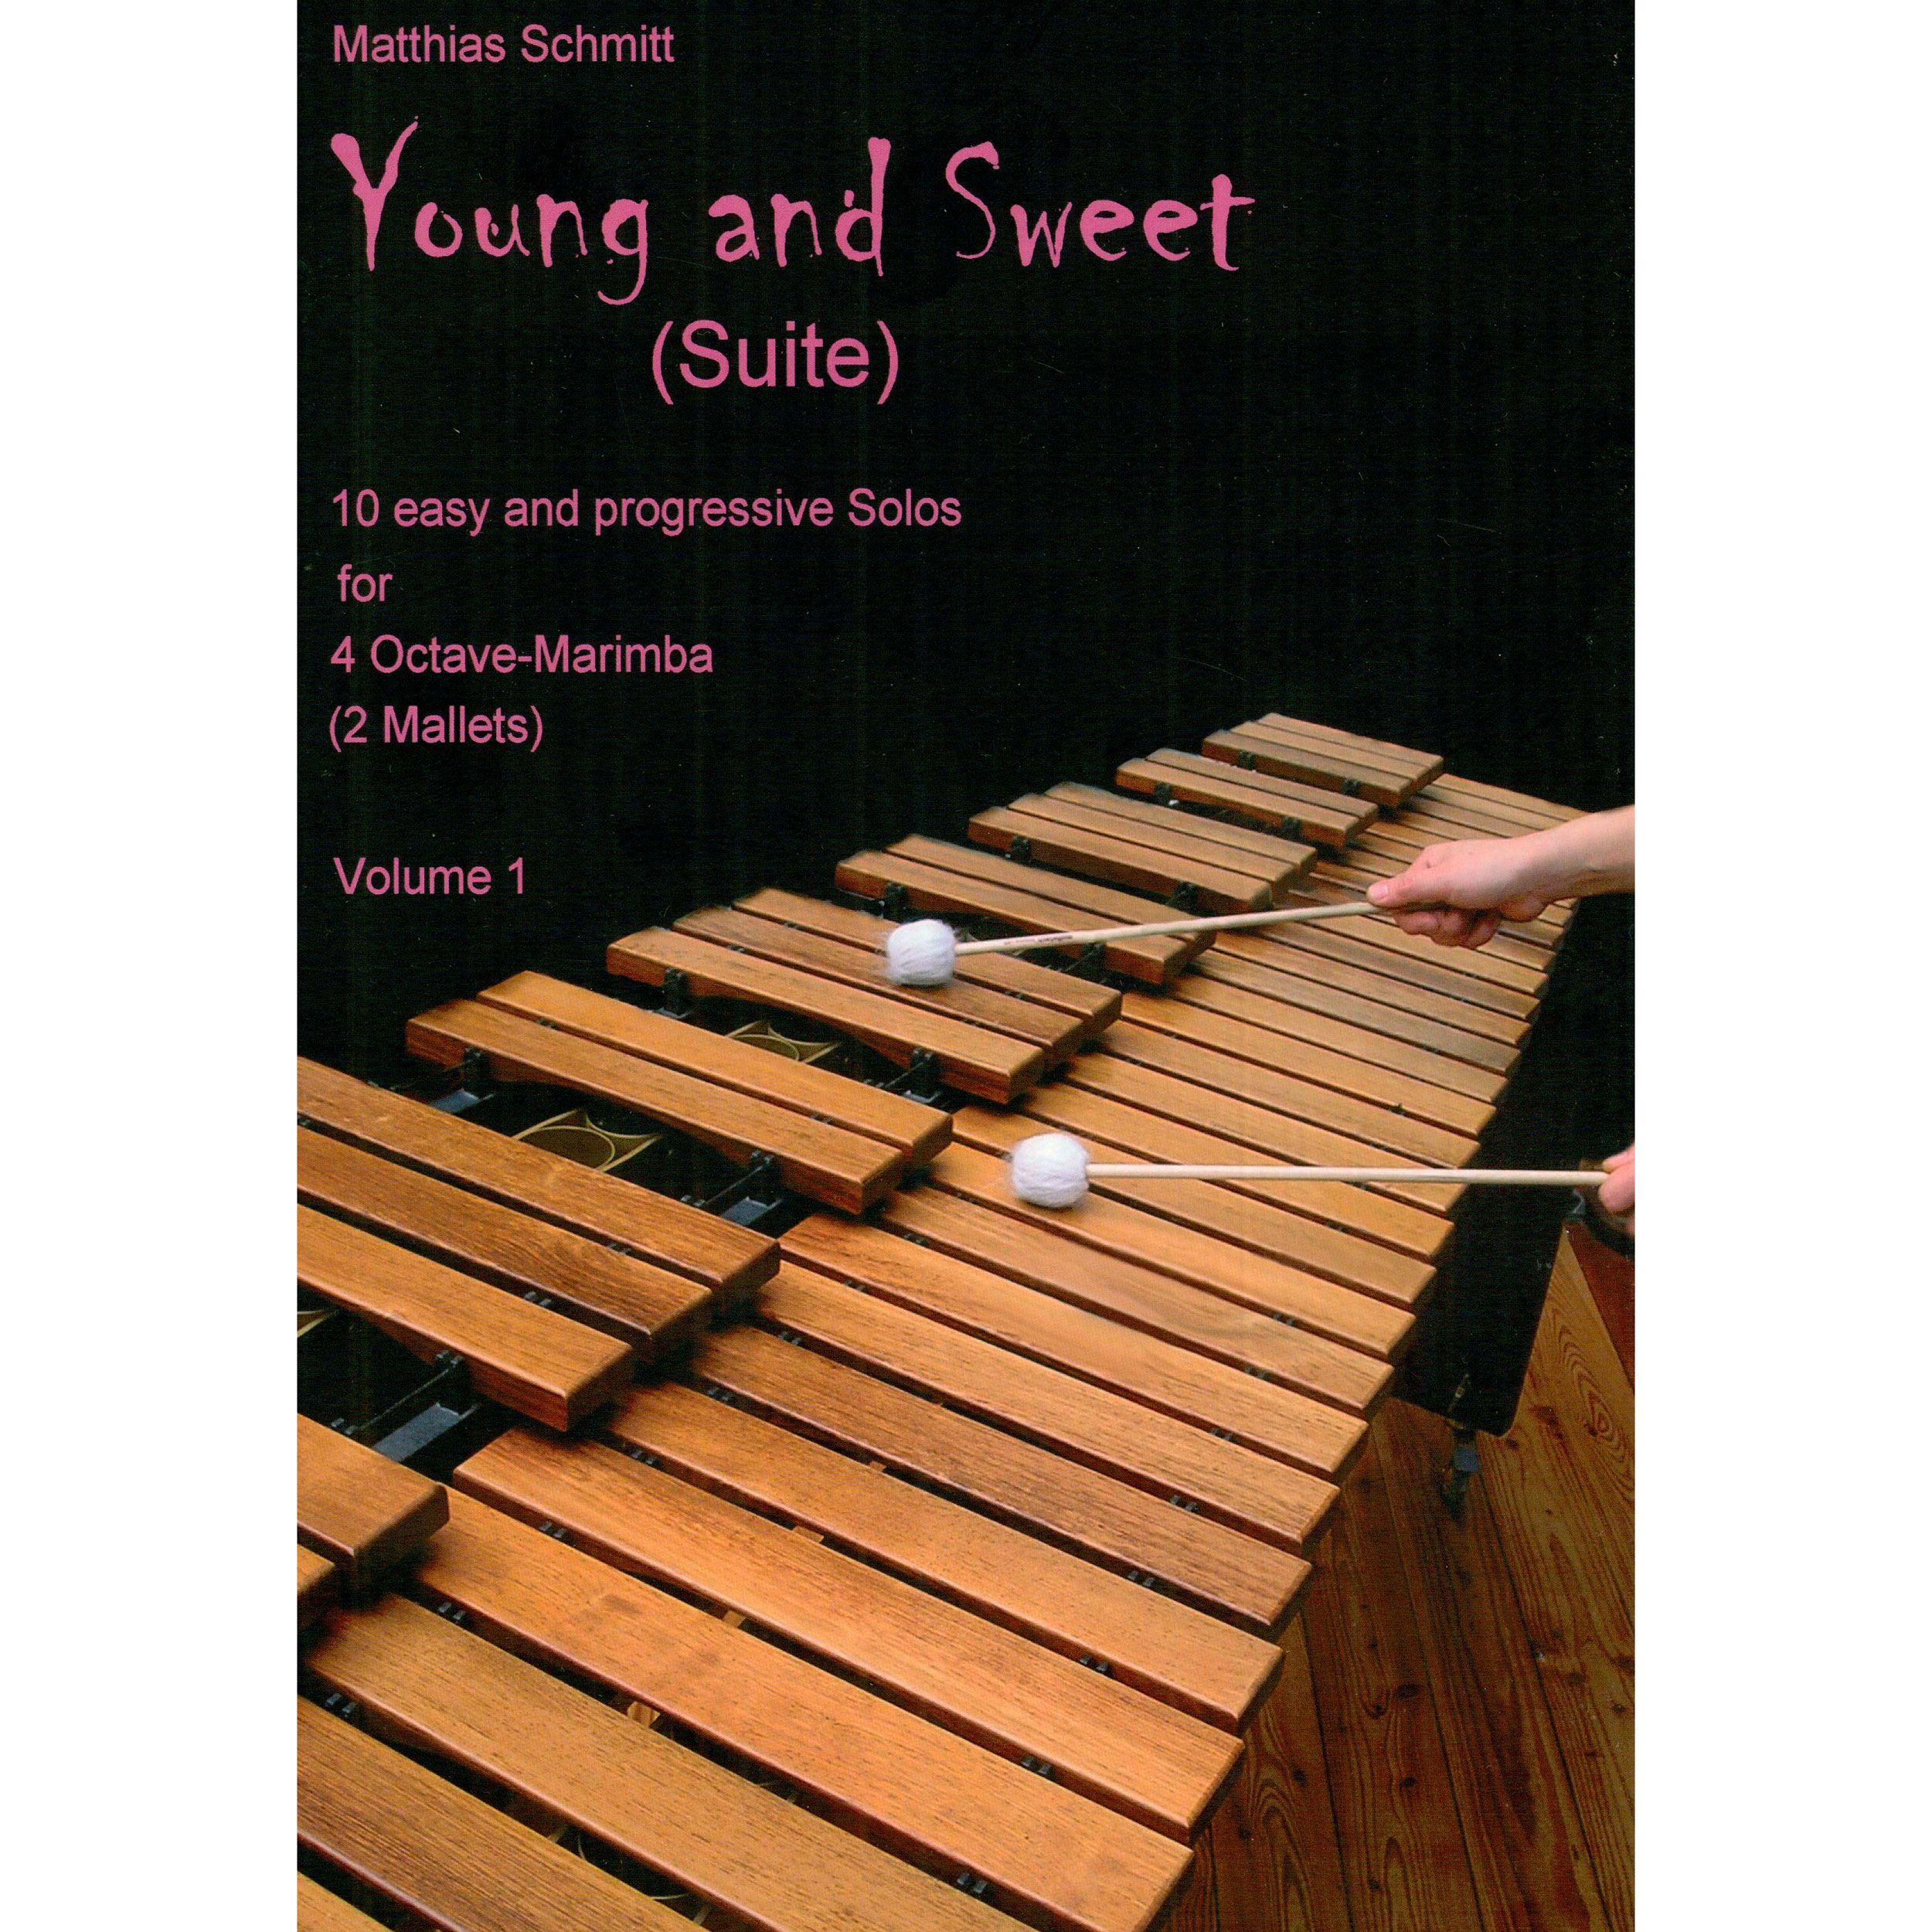 Young and Sweet (Suite), vol. 1 by Matthias Schmitt